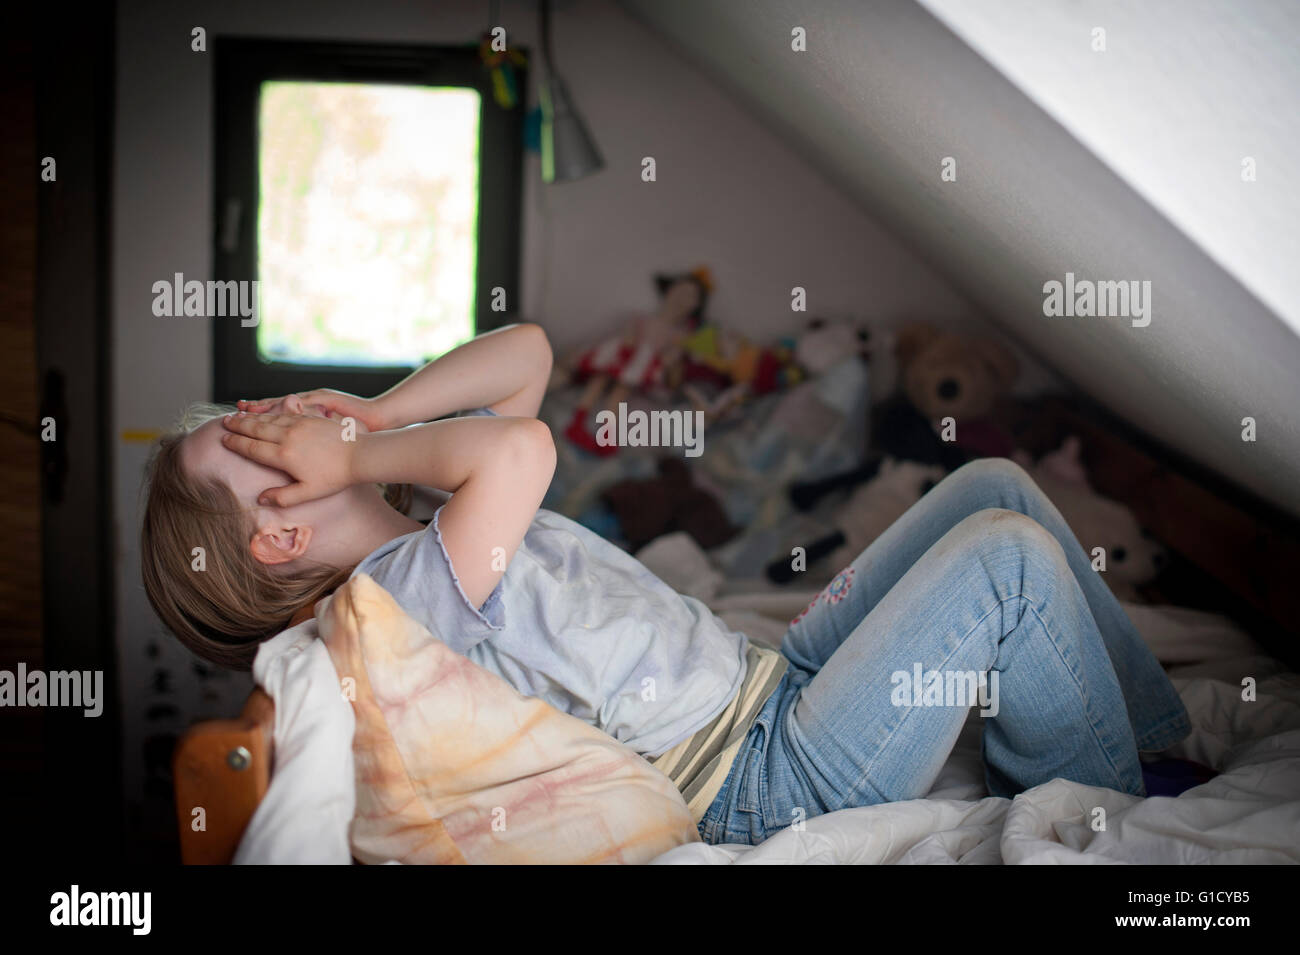 Young girl upset at home in her bedroom. - Stock Image